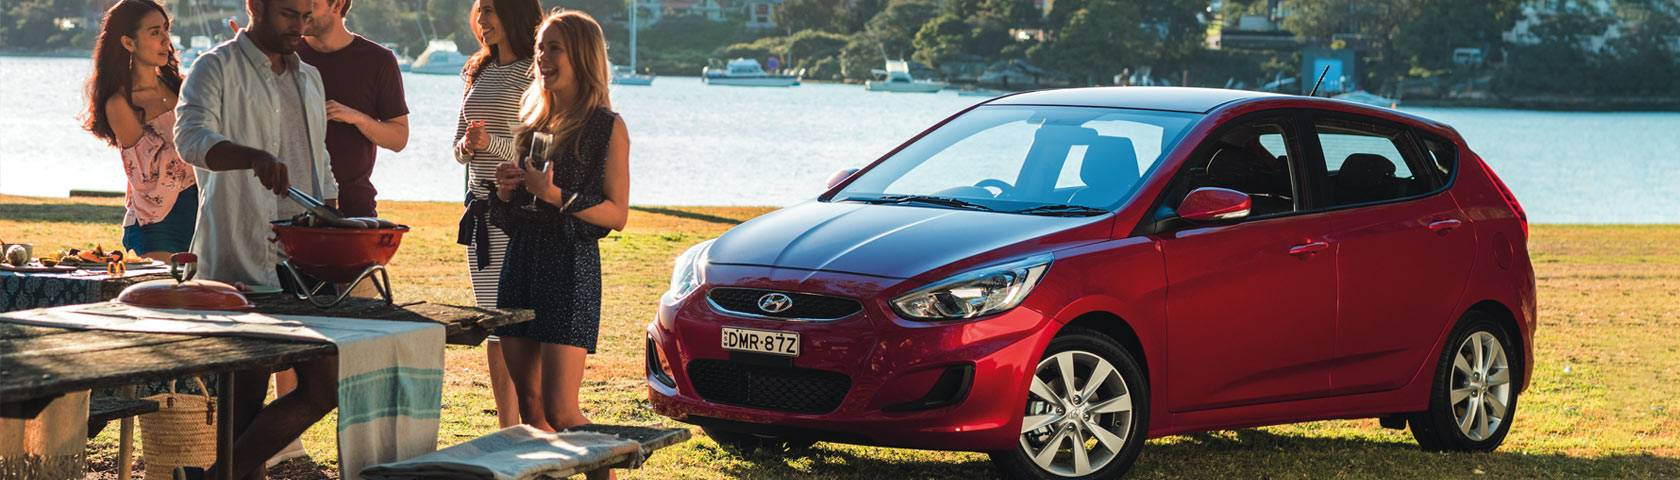 Hyundai Accent in a Geraldton Park